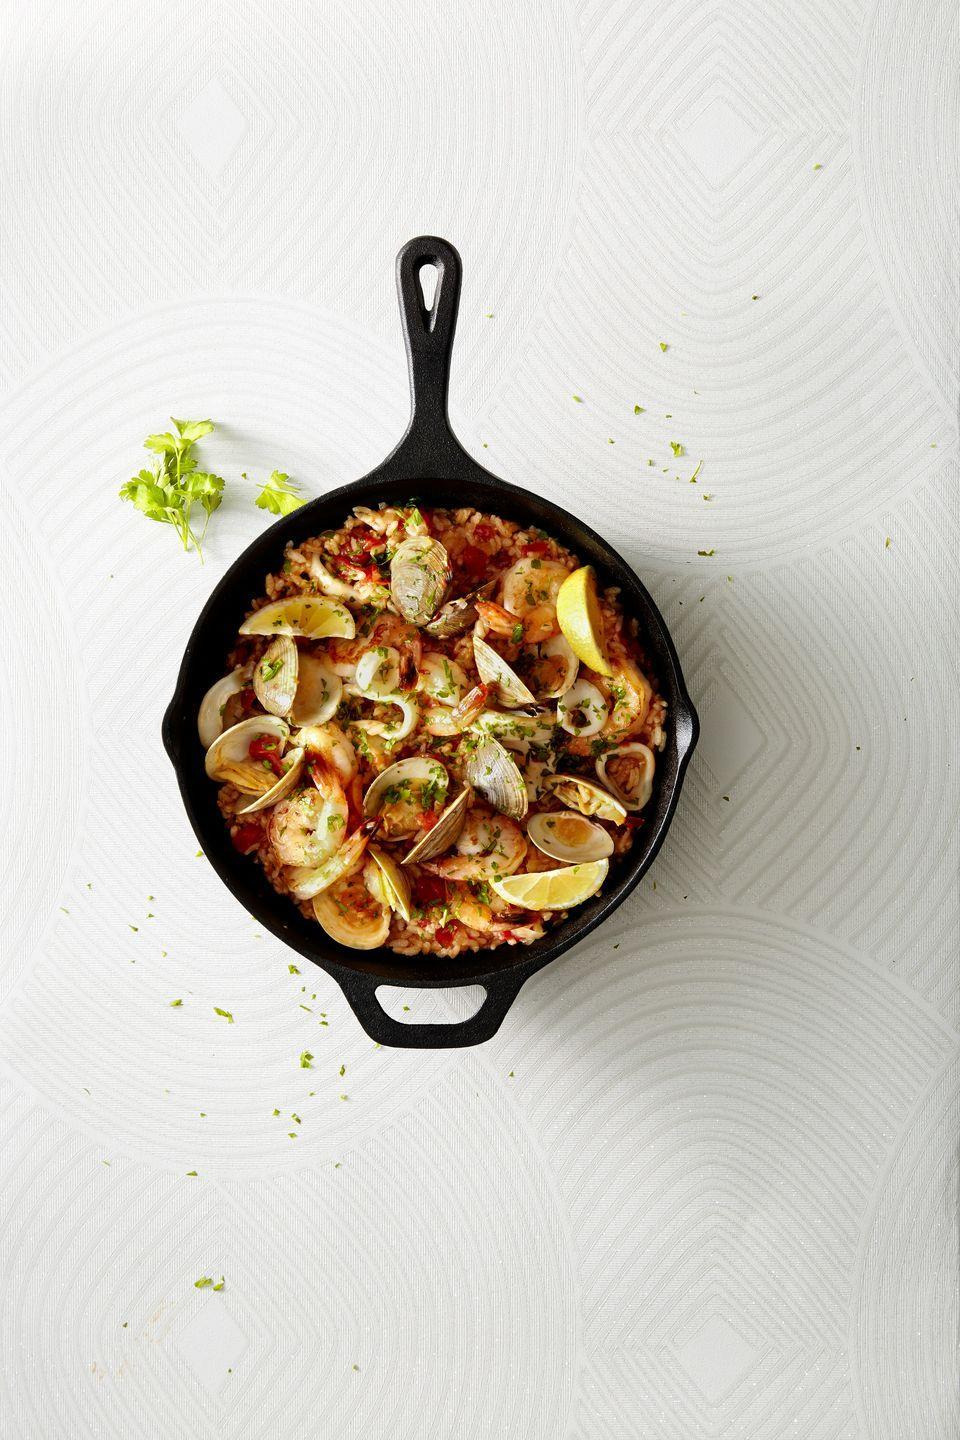 """<p>Throw all your fave seafood into one pot and transport to Spain this summer with just one bite.</p><p><em><a href=""""https://www.goodhousekeeping.com/food-recipes/a42820/easiest-ever-paella-recipe/"""" rel=""""nofollow noopener"""" target=""""_blank"""" data-ylk=""""slk:Get the recipe for Easiest-Ever Paella »"""" class=""""link rapid-noclick-resp"""">Get the recipe for Easiest-Ever Paella »</a></em><br></p>"""